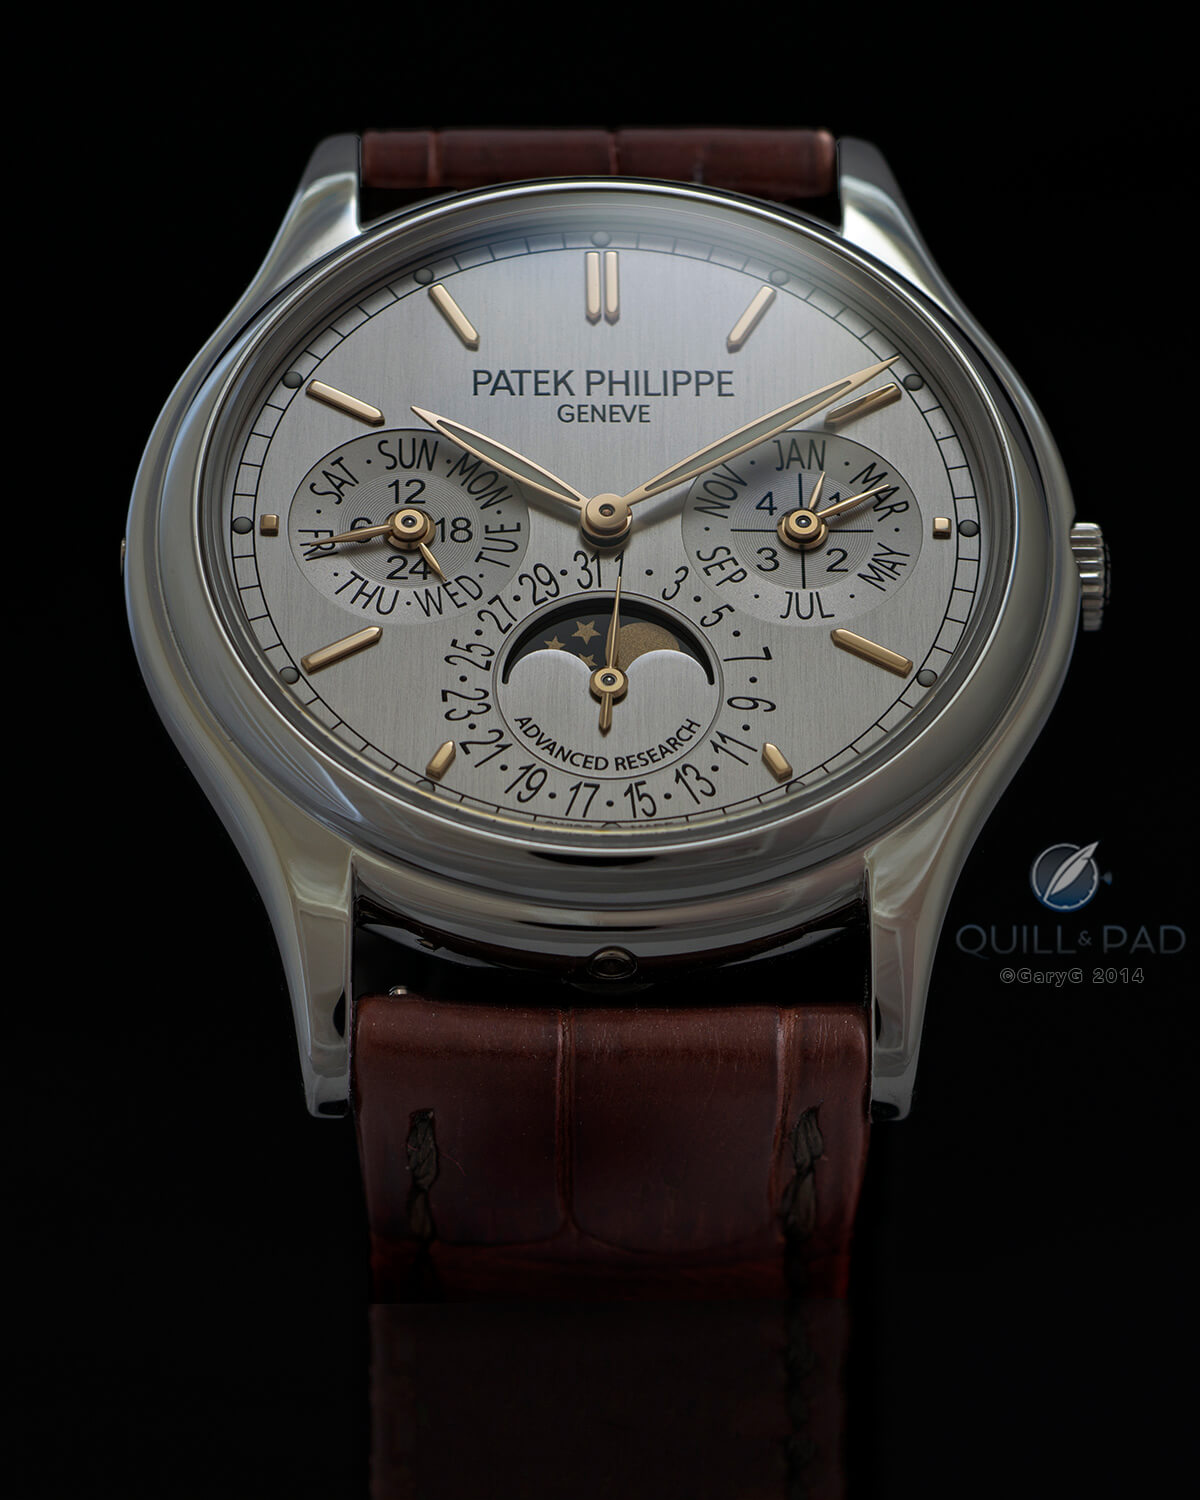 Patek Philippe Advanced Research Reference 5550P Perpetual Calendar